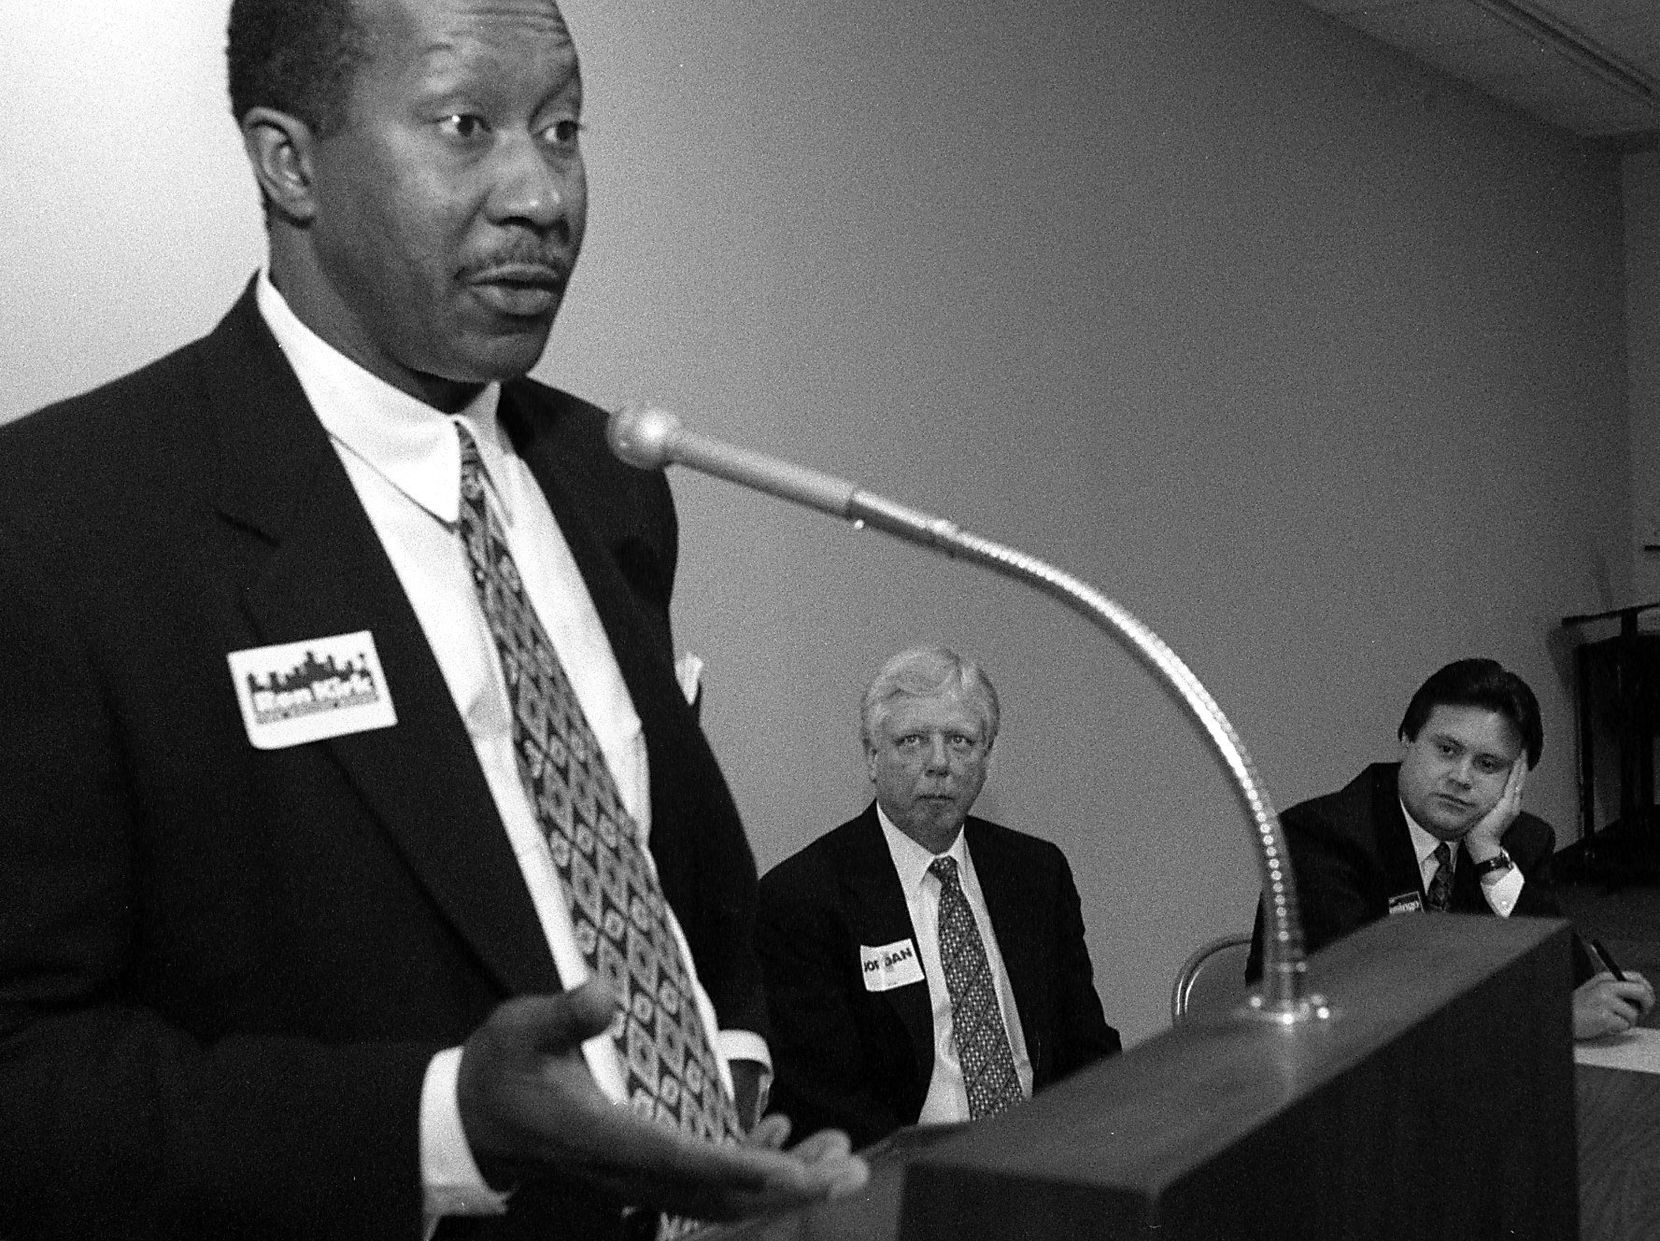 On March 18. 1995, Ron Kirk, Darrell Jordan and, at right, Domingo Garcia went to the First Presbyterian Church in downtown Dallas to make the case they were the best person to be mayor.